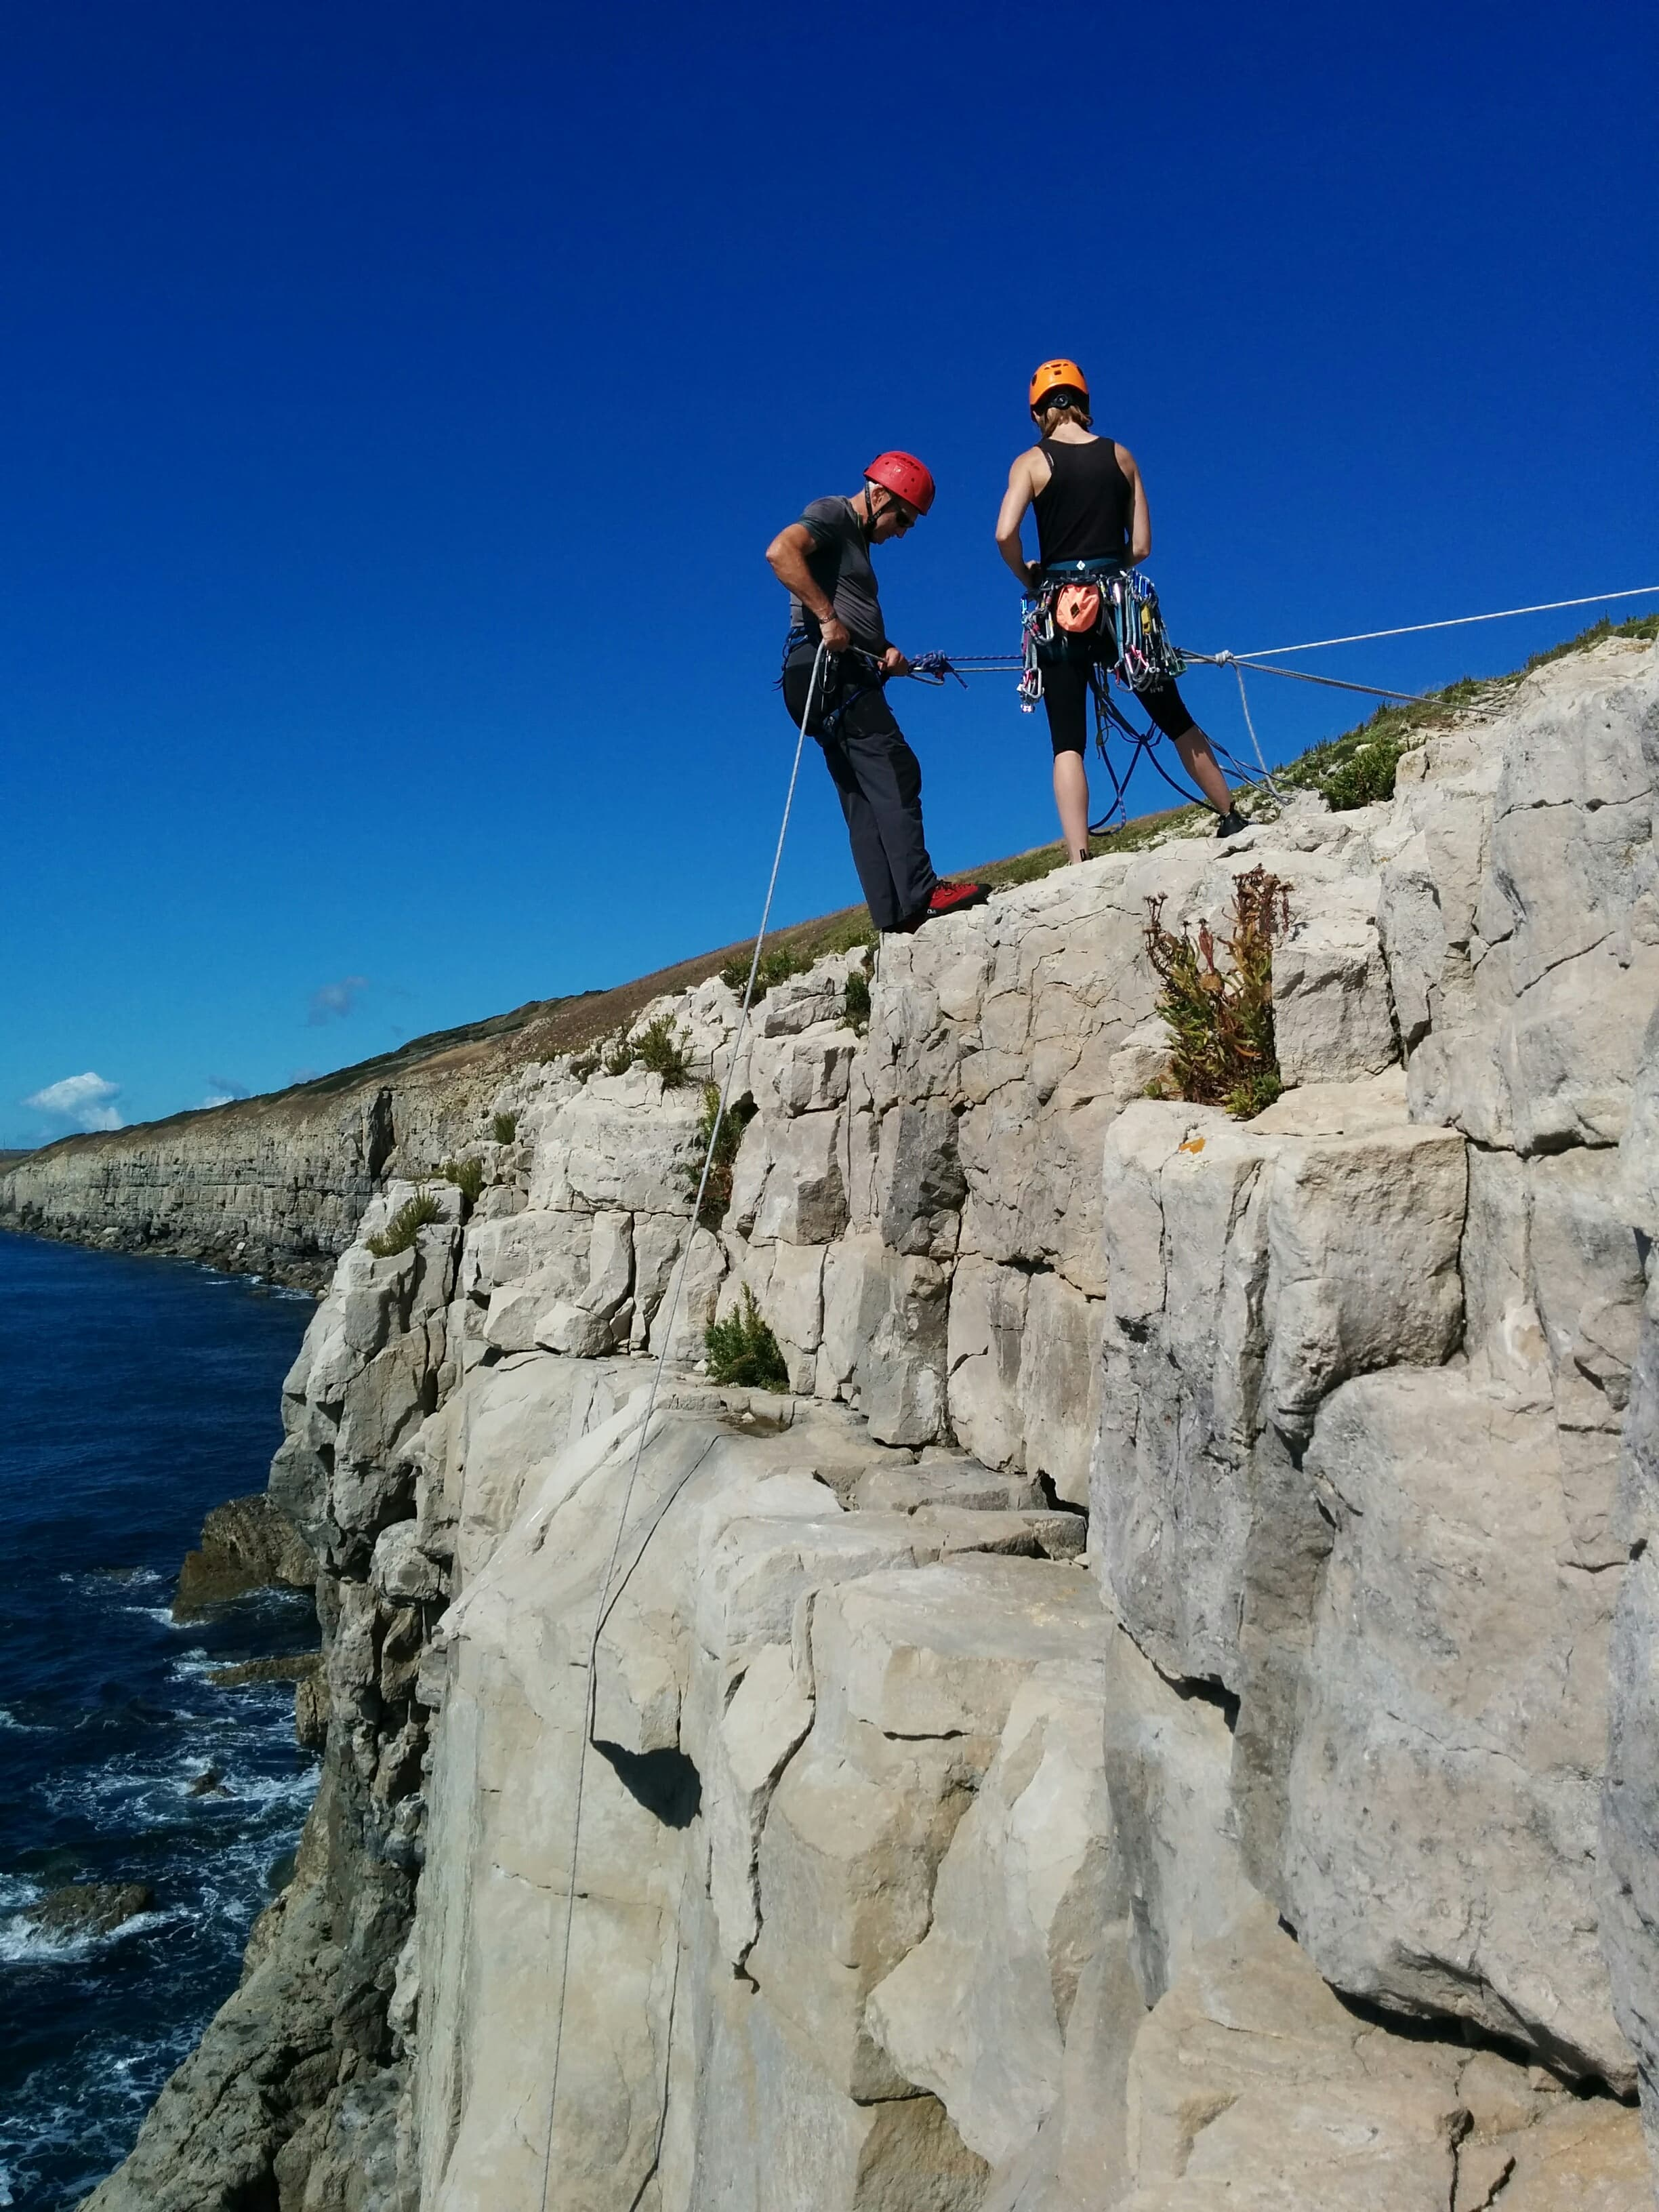 Sarah Laidler instructing a client in the art of safe abseiling at Swanage, Dorset.